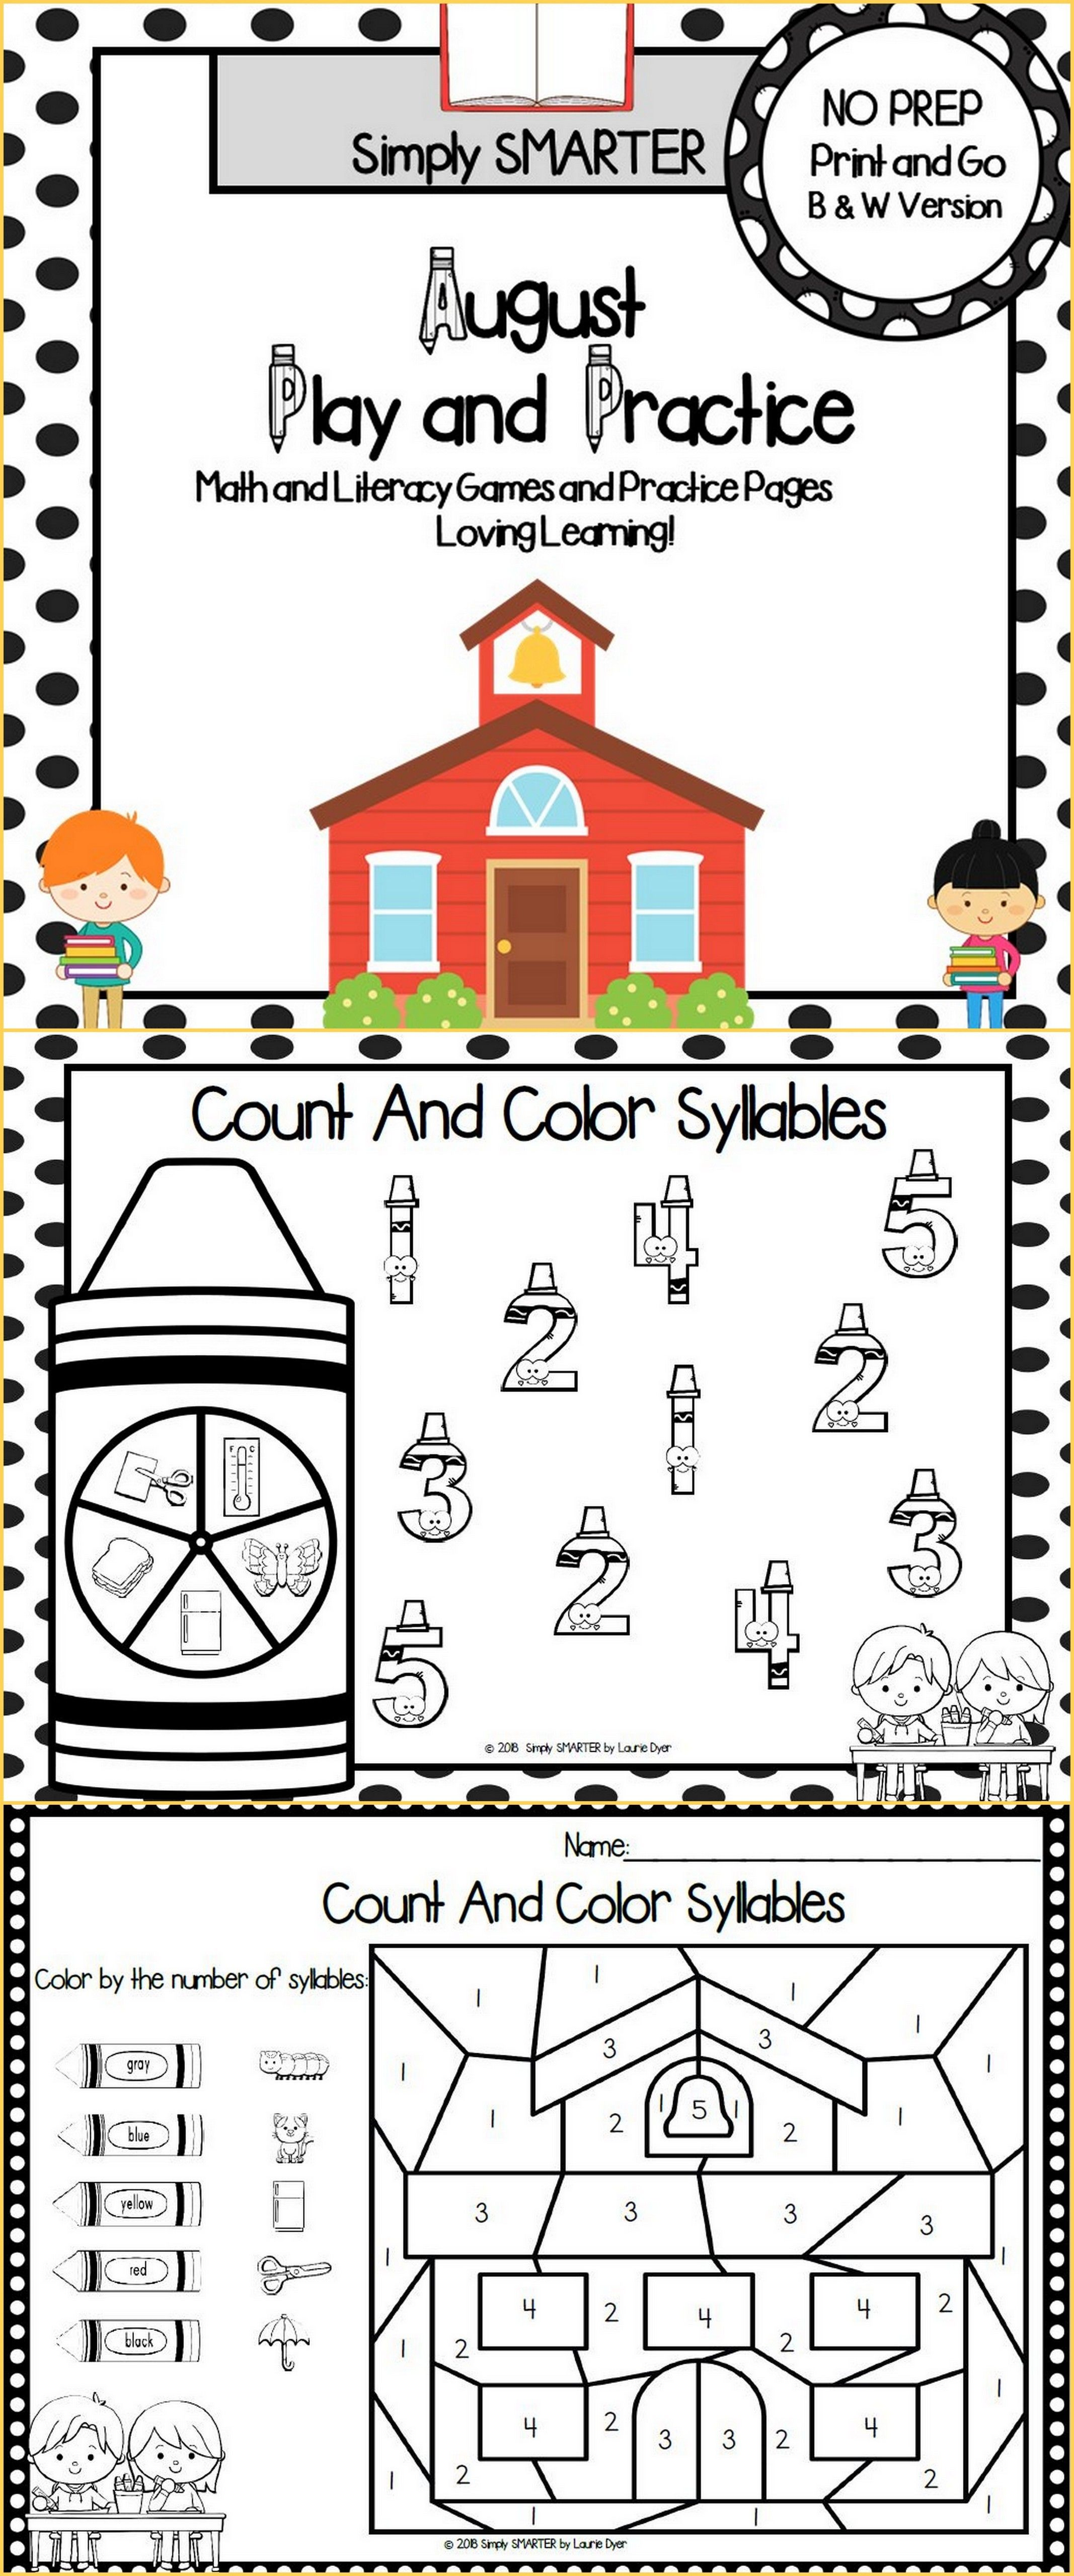 August Play And Practice No Prep Math And Literacy Games